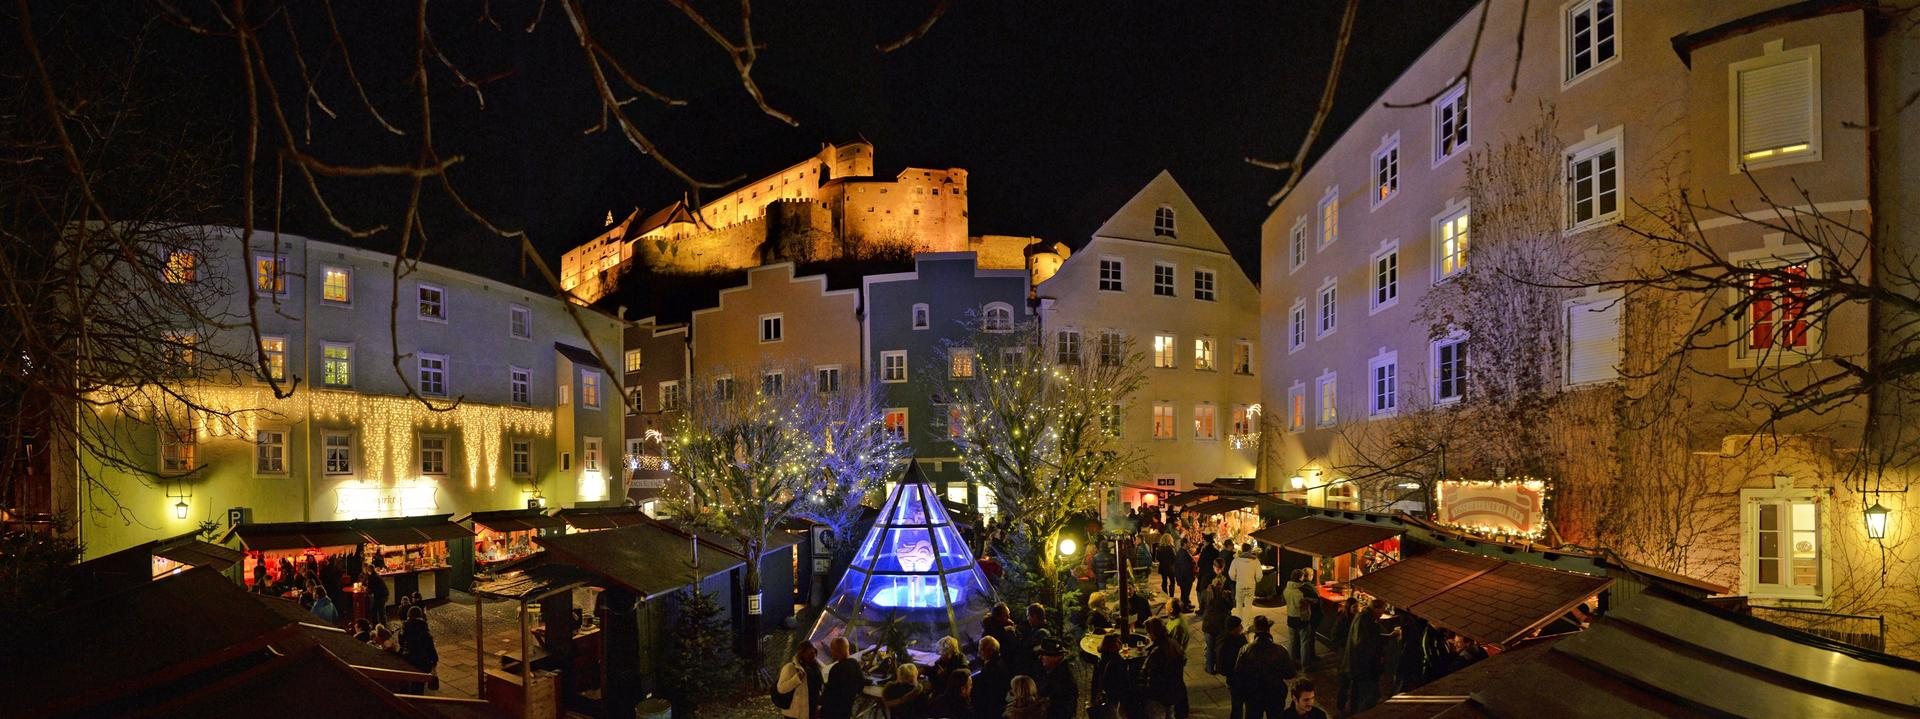 Advent in den Grueben Burghausen Panorama